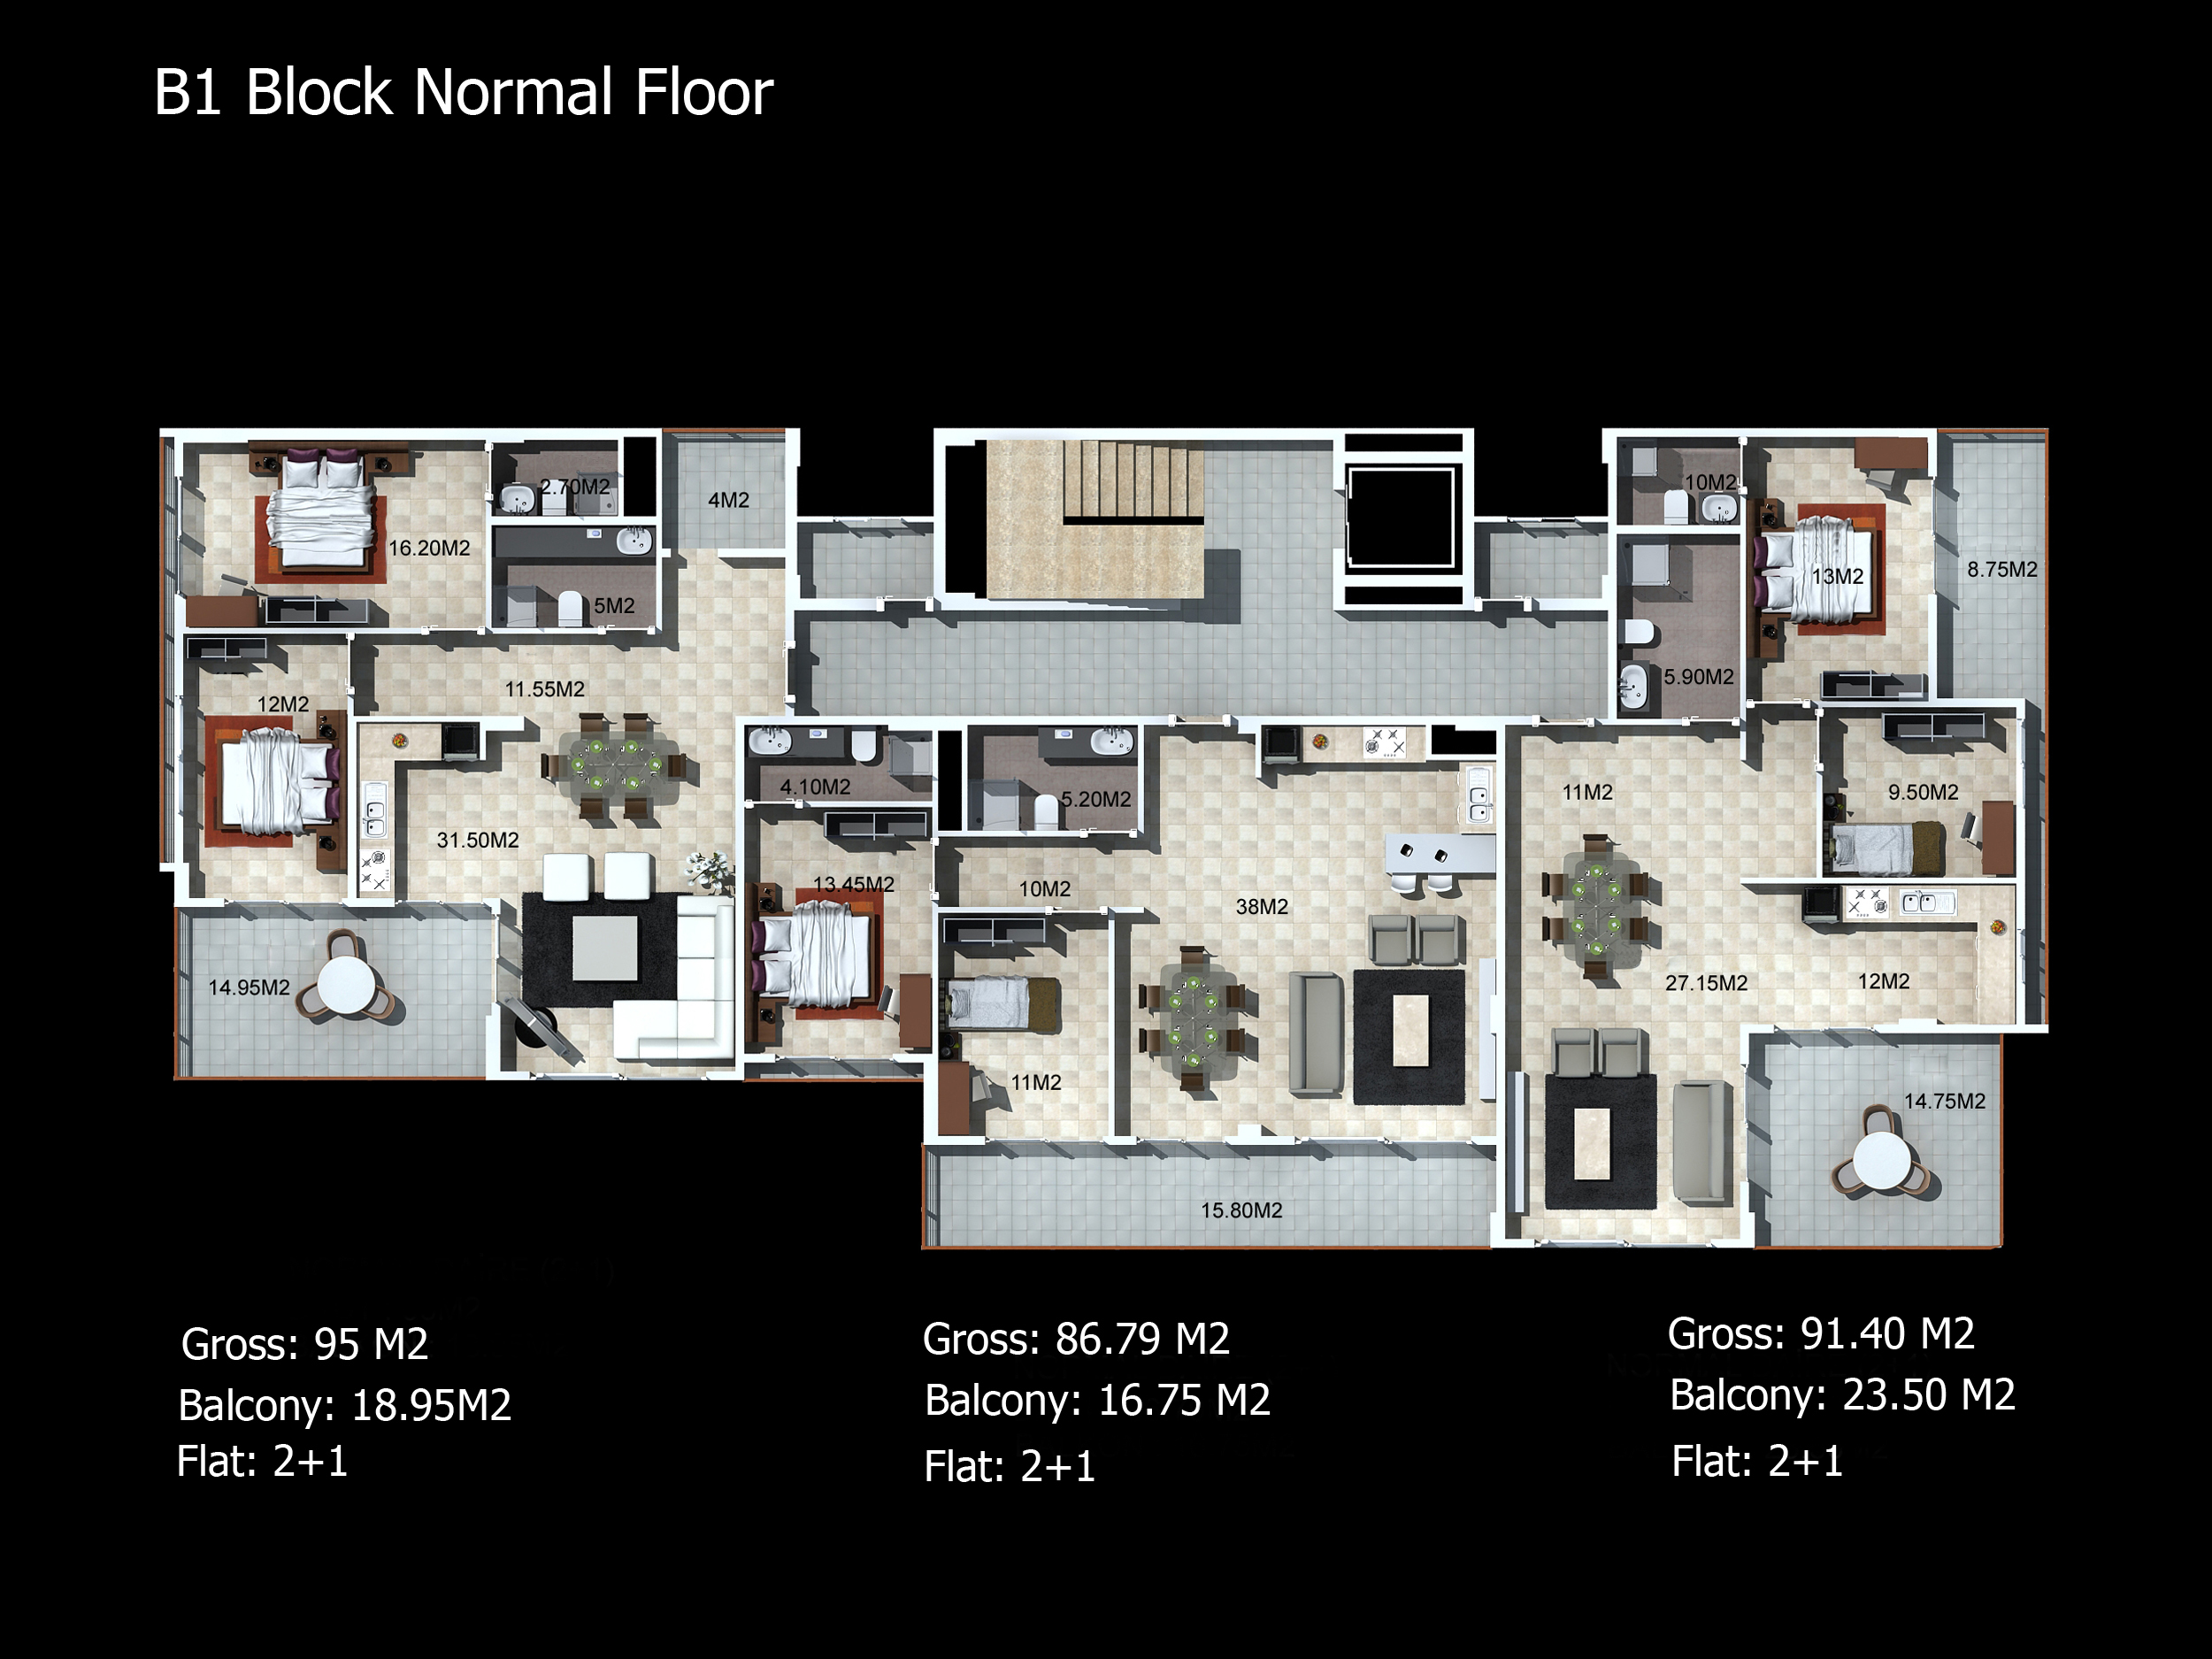 b1-block-normal-floor